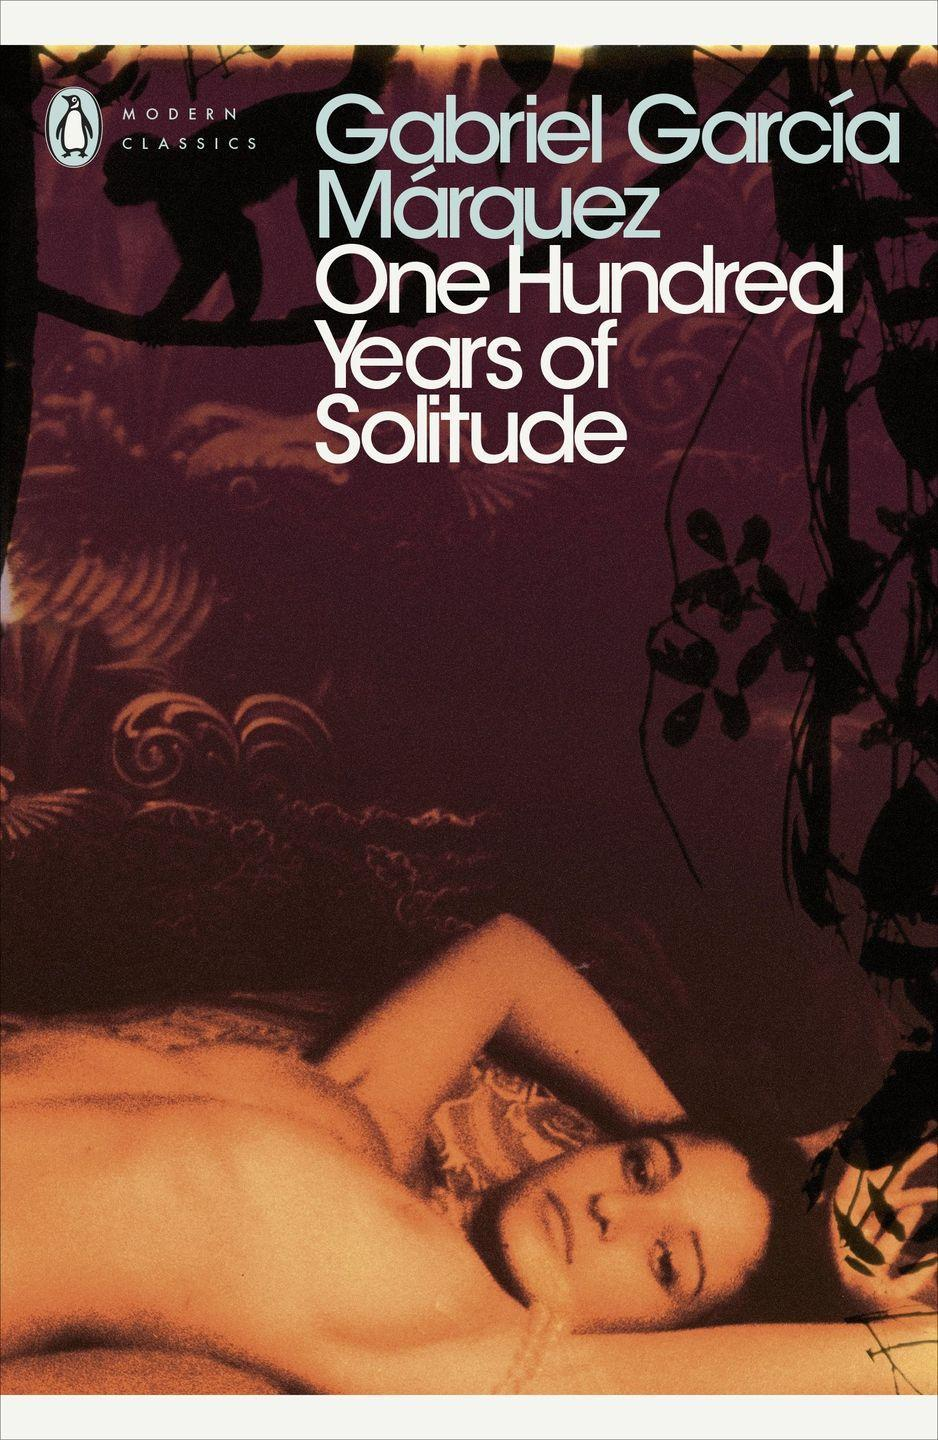 "<p>One Hundred Years of Solitude is the history of the isolated town of Macondo and of the family who founds it, the Buendías. Gabriel García Márquez has touched the lives of readers across the globe and earned him the Nobel Prize for Literature.</p><p><a class=""link rapid-noclick-resp"" href=""https://www.amazon.co.uk/Hundred-Solitude-Penguin-Modern-Classics/dp/014118499X/ref=sr_1_1?dchild=1&keywords=One+Hundred+Years+of+Solitude+by+Gabriel+Garc%C3%ADa+M%C3%A1rquez&qid=1586952857&sr=8-1&tag=hearstuk-yahoo-21&ascsubtag=%5Bartid%7C1921.g.32141605%5Bsrc%7Cyahoo-uk"" rel=""nofollow noopener"" target=""_blank"" data-ylk=""slk:SHOP NOW"">SHOP NOW</a></p>"